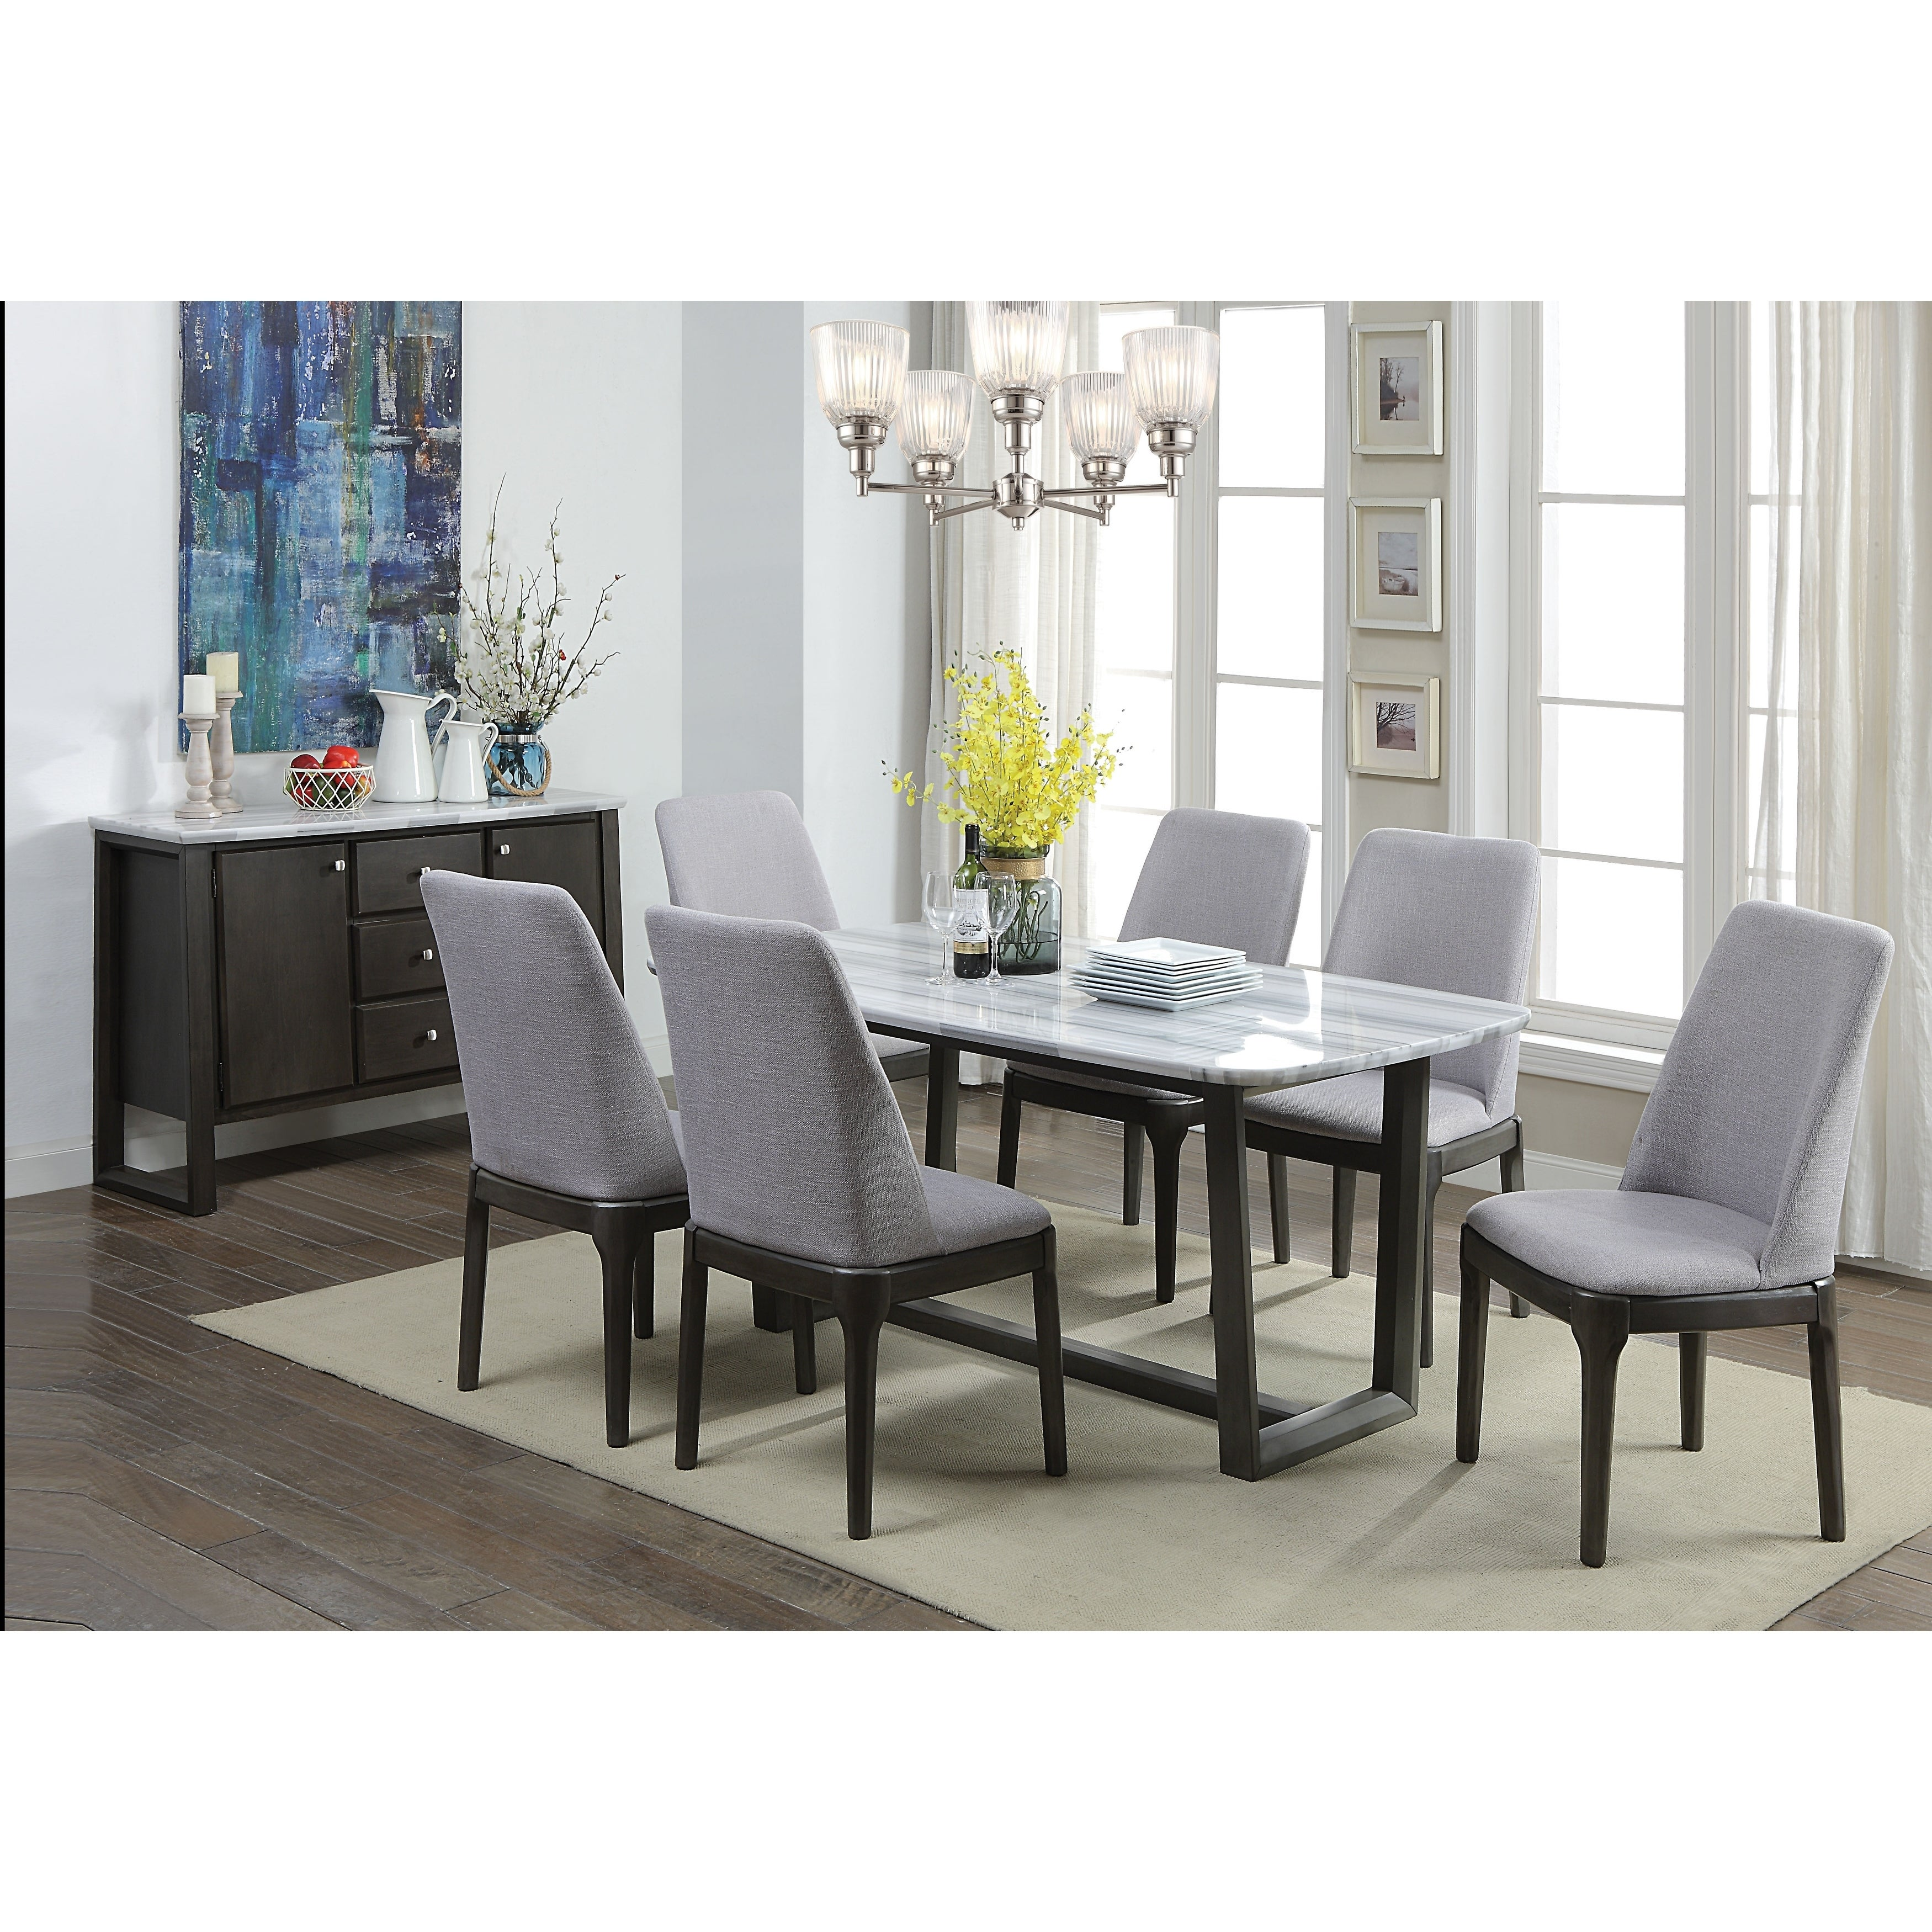 Marble Top Dining Table With Poplar Wood Trestle Base Brown And White On Sale Overstock 28001595